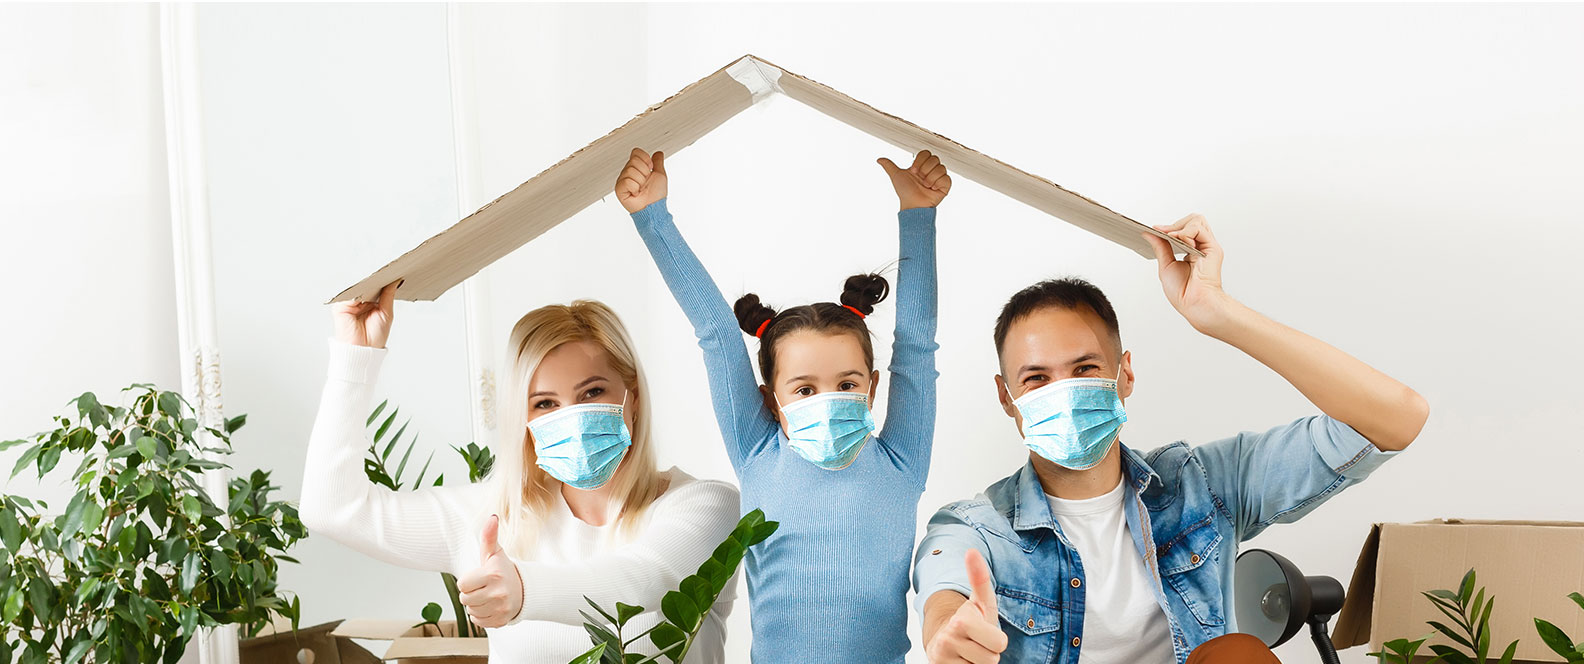 family with mask carrying cardboard house roof